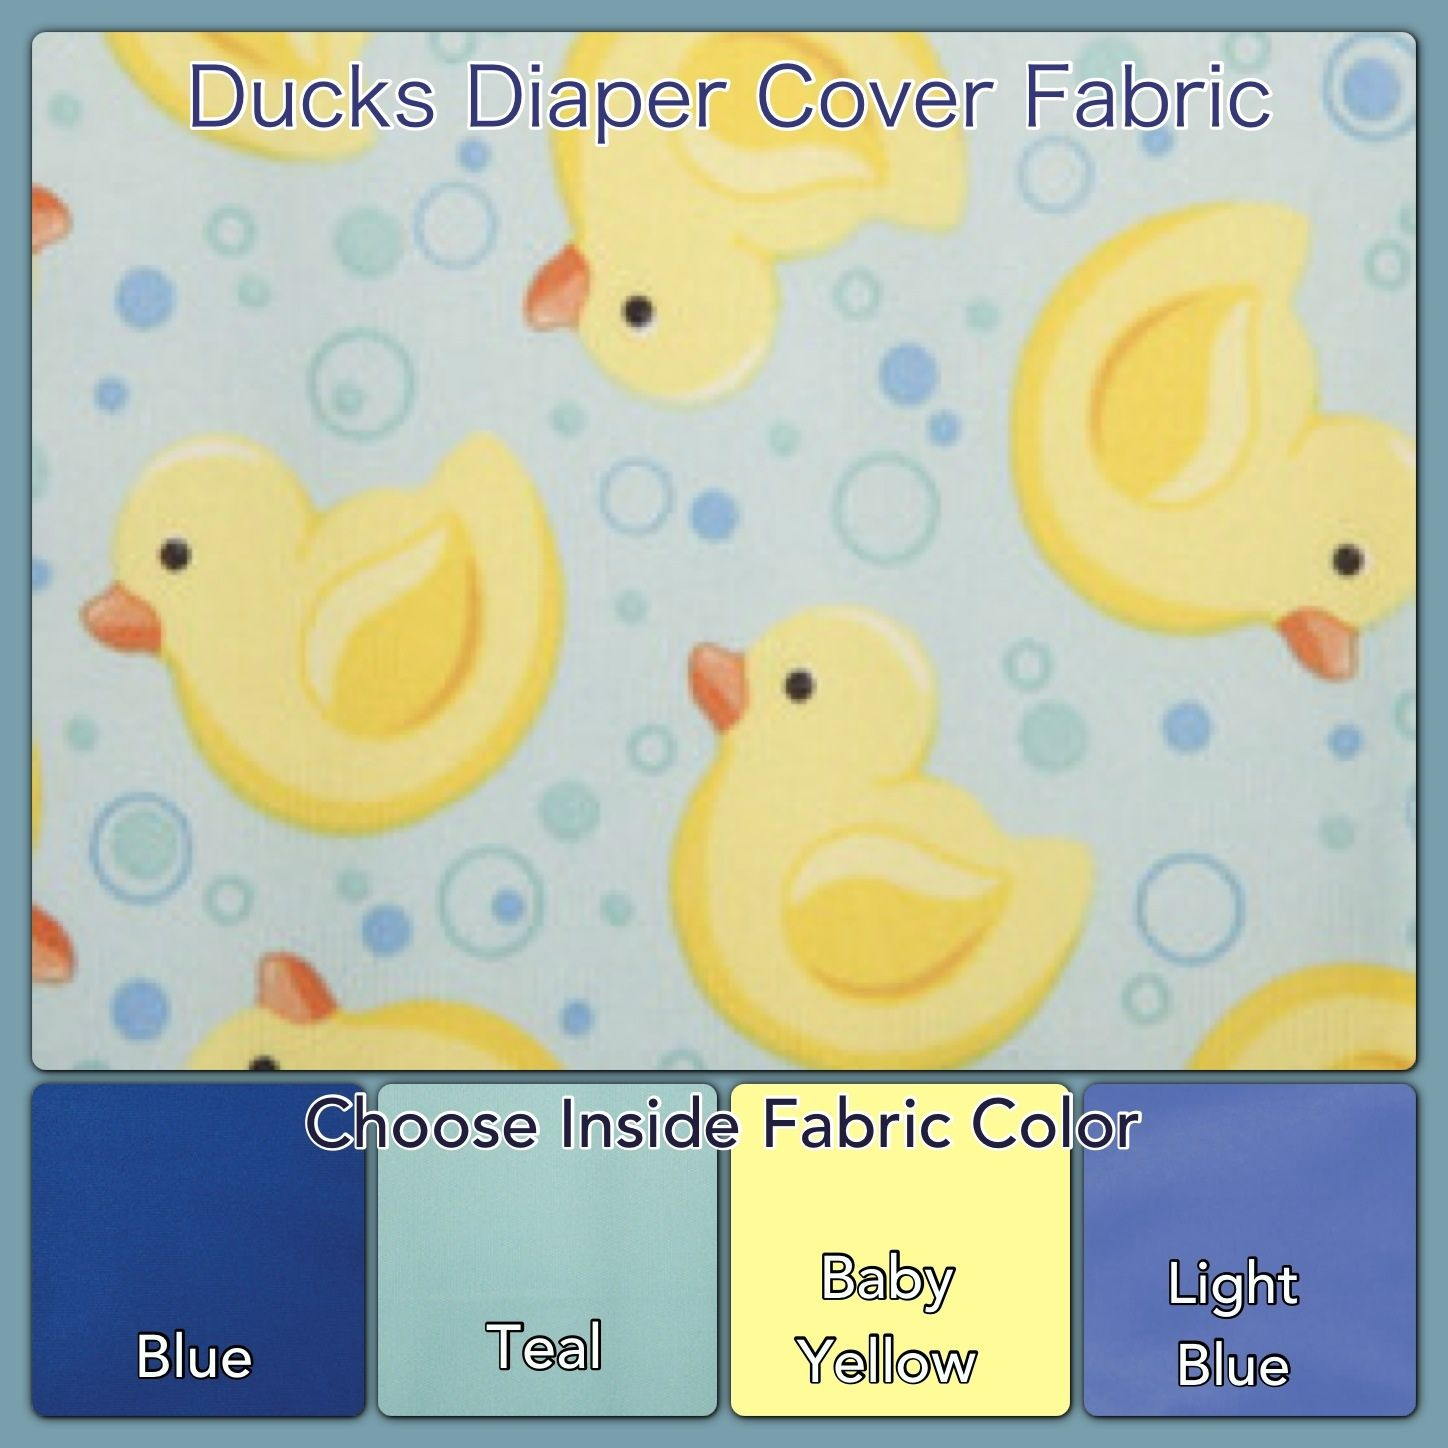 Ducks waterproof cloth diaper covers by titus company shop etsy